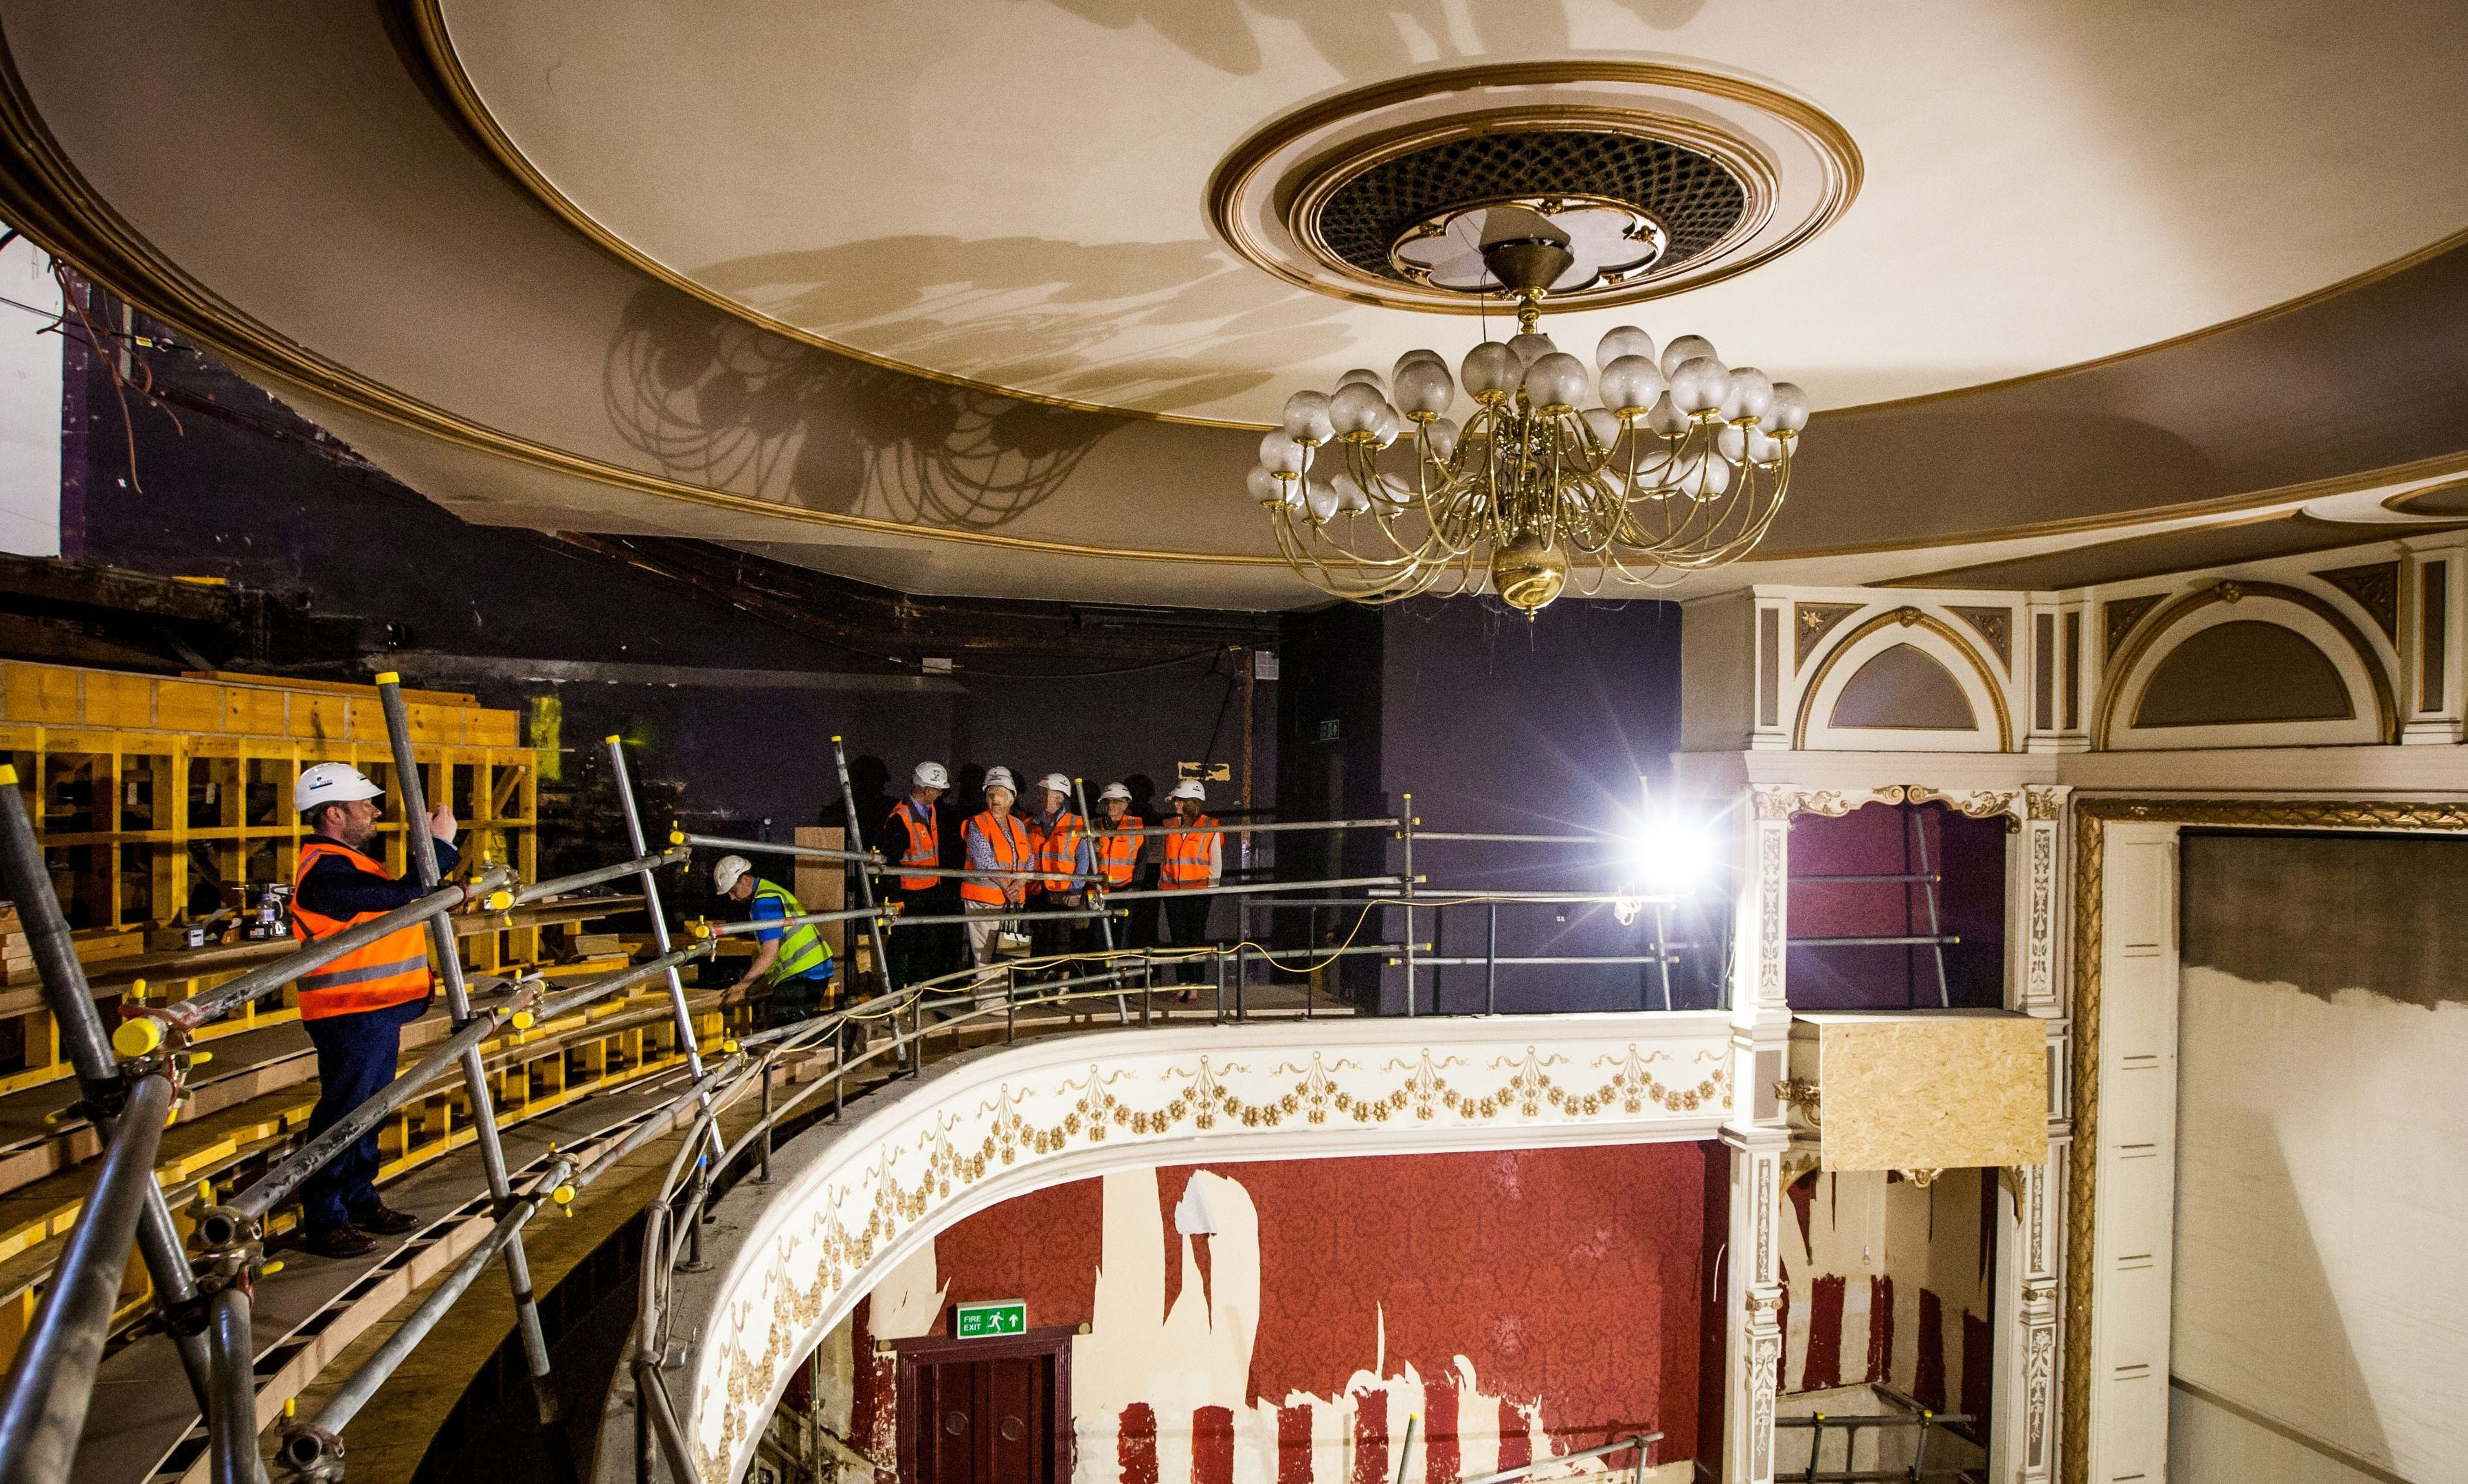 The ongoing work at Perth Theatre.